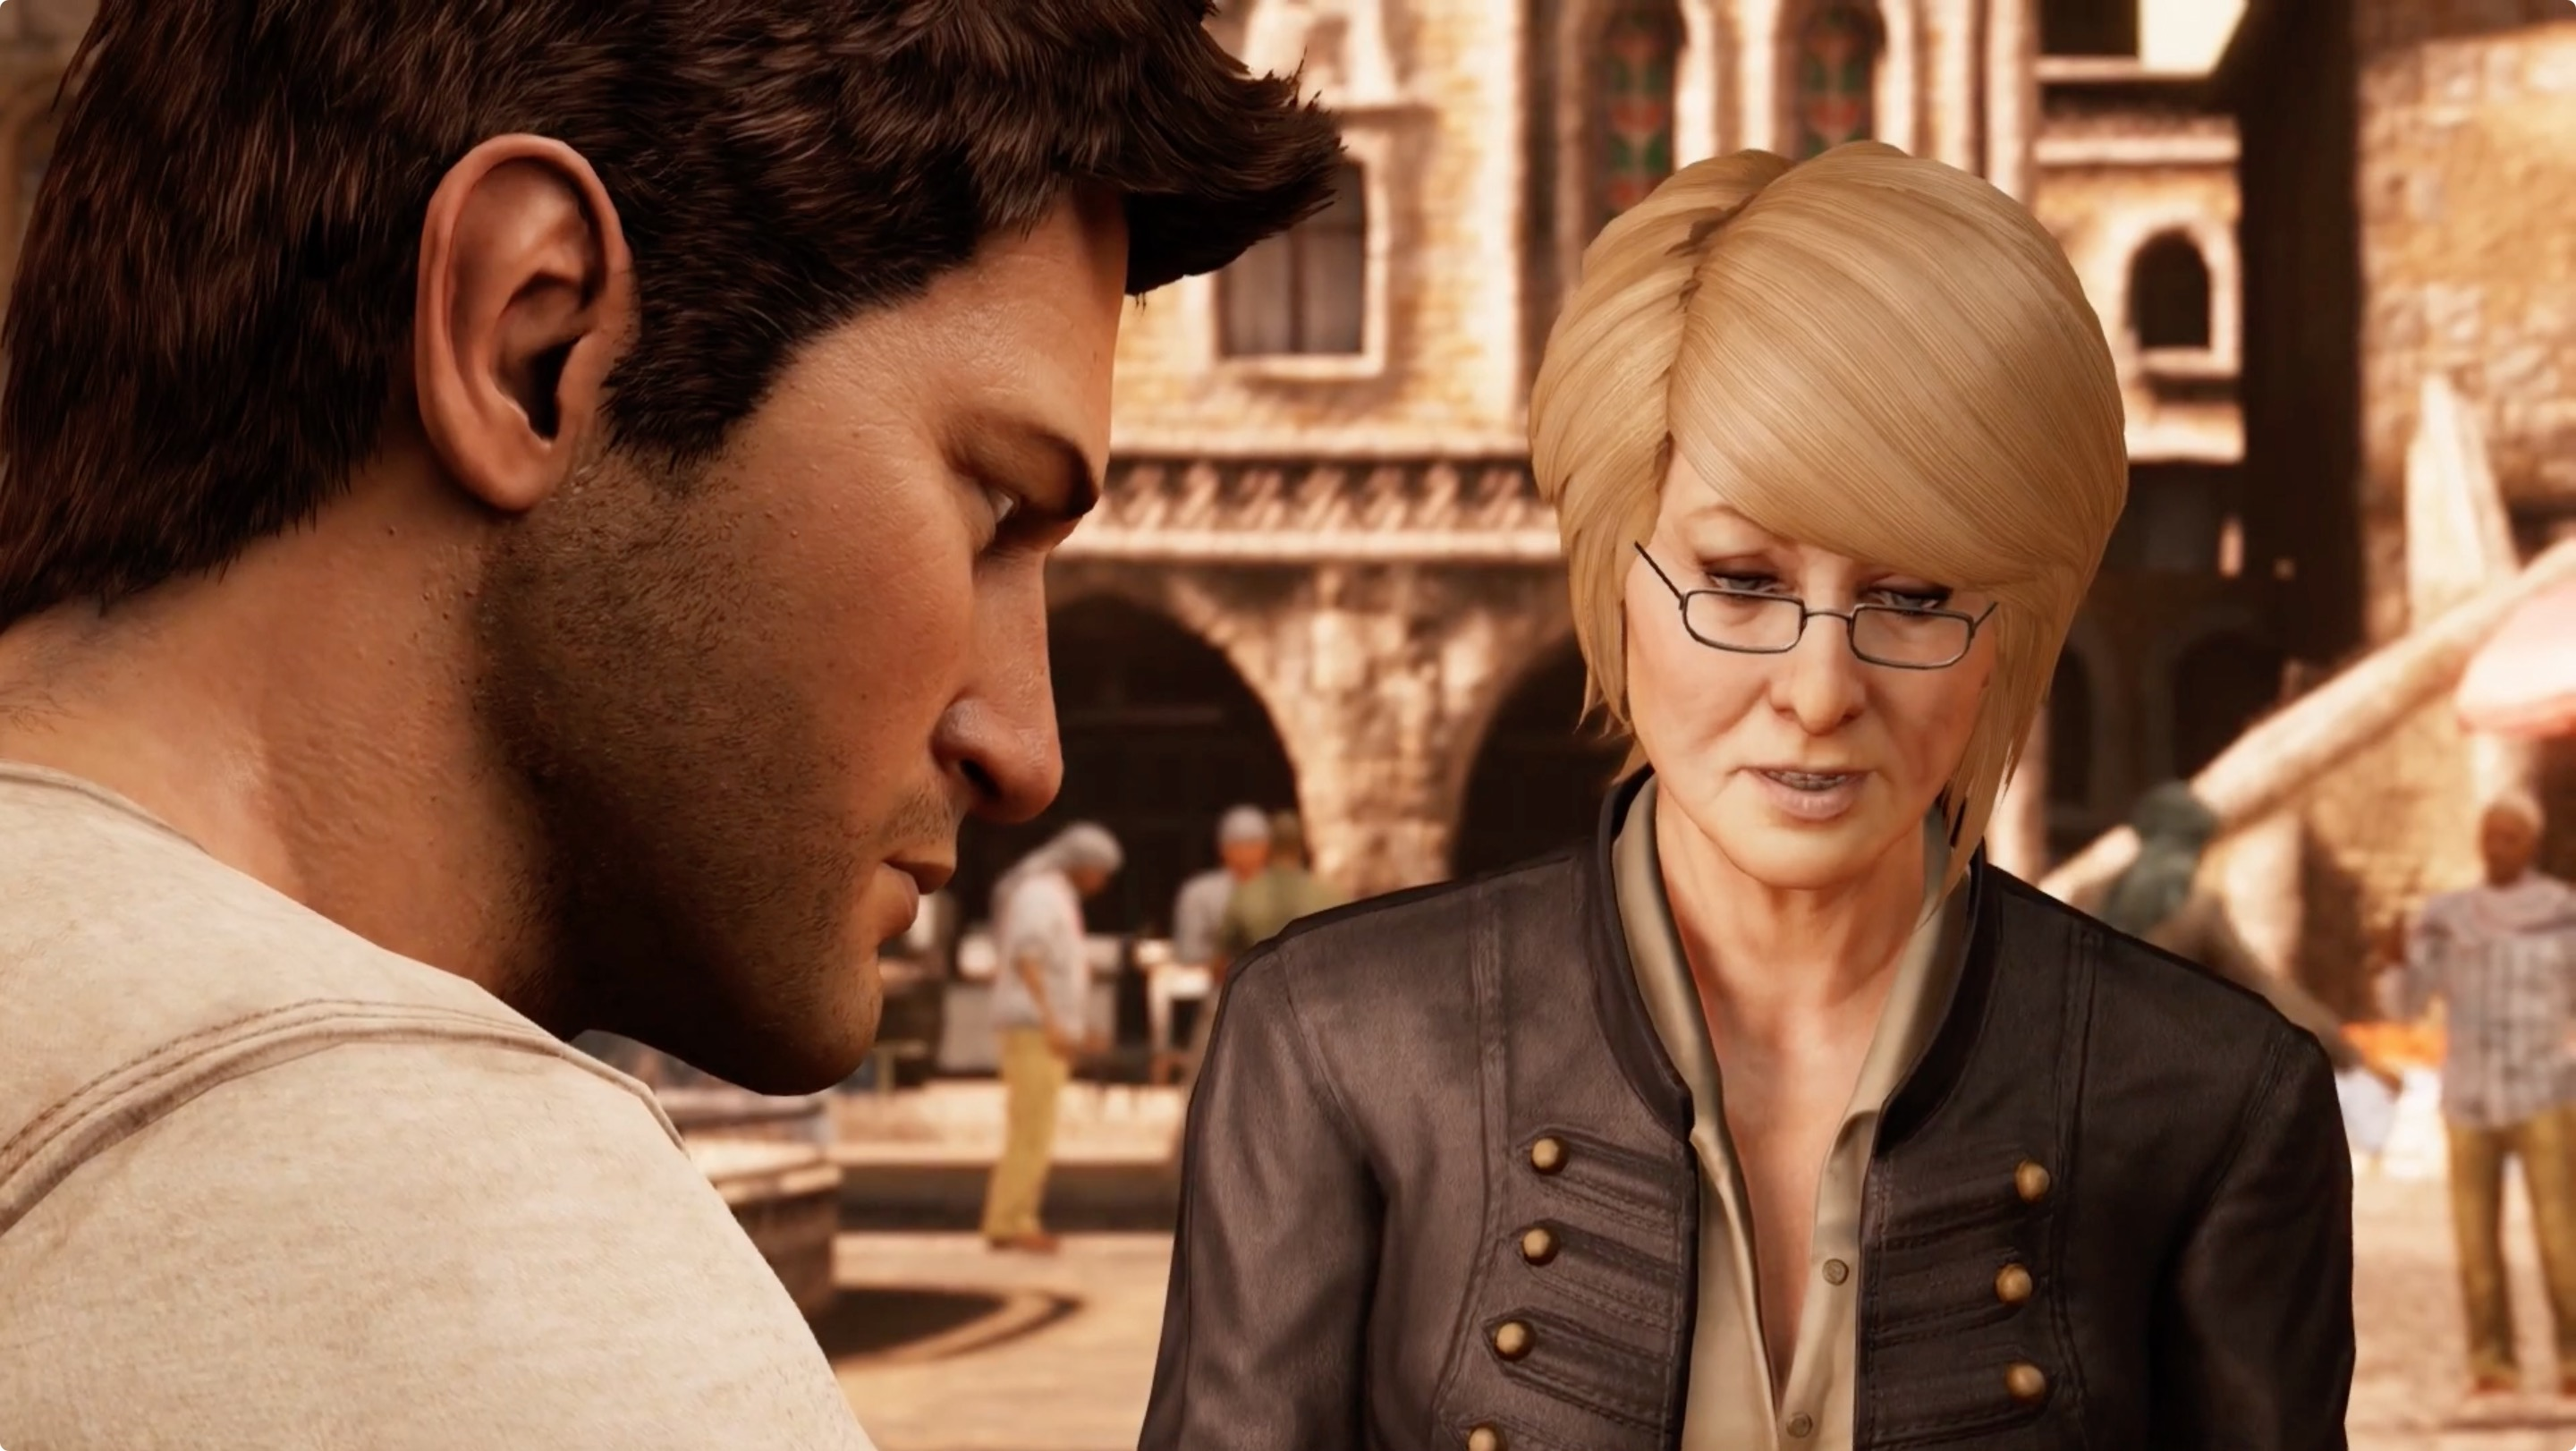 Uncharted 3: Drake's Deception 'As Above, So Below' treasure locations guide